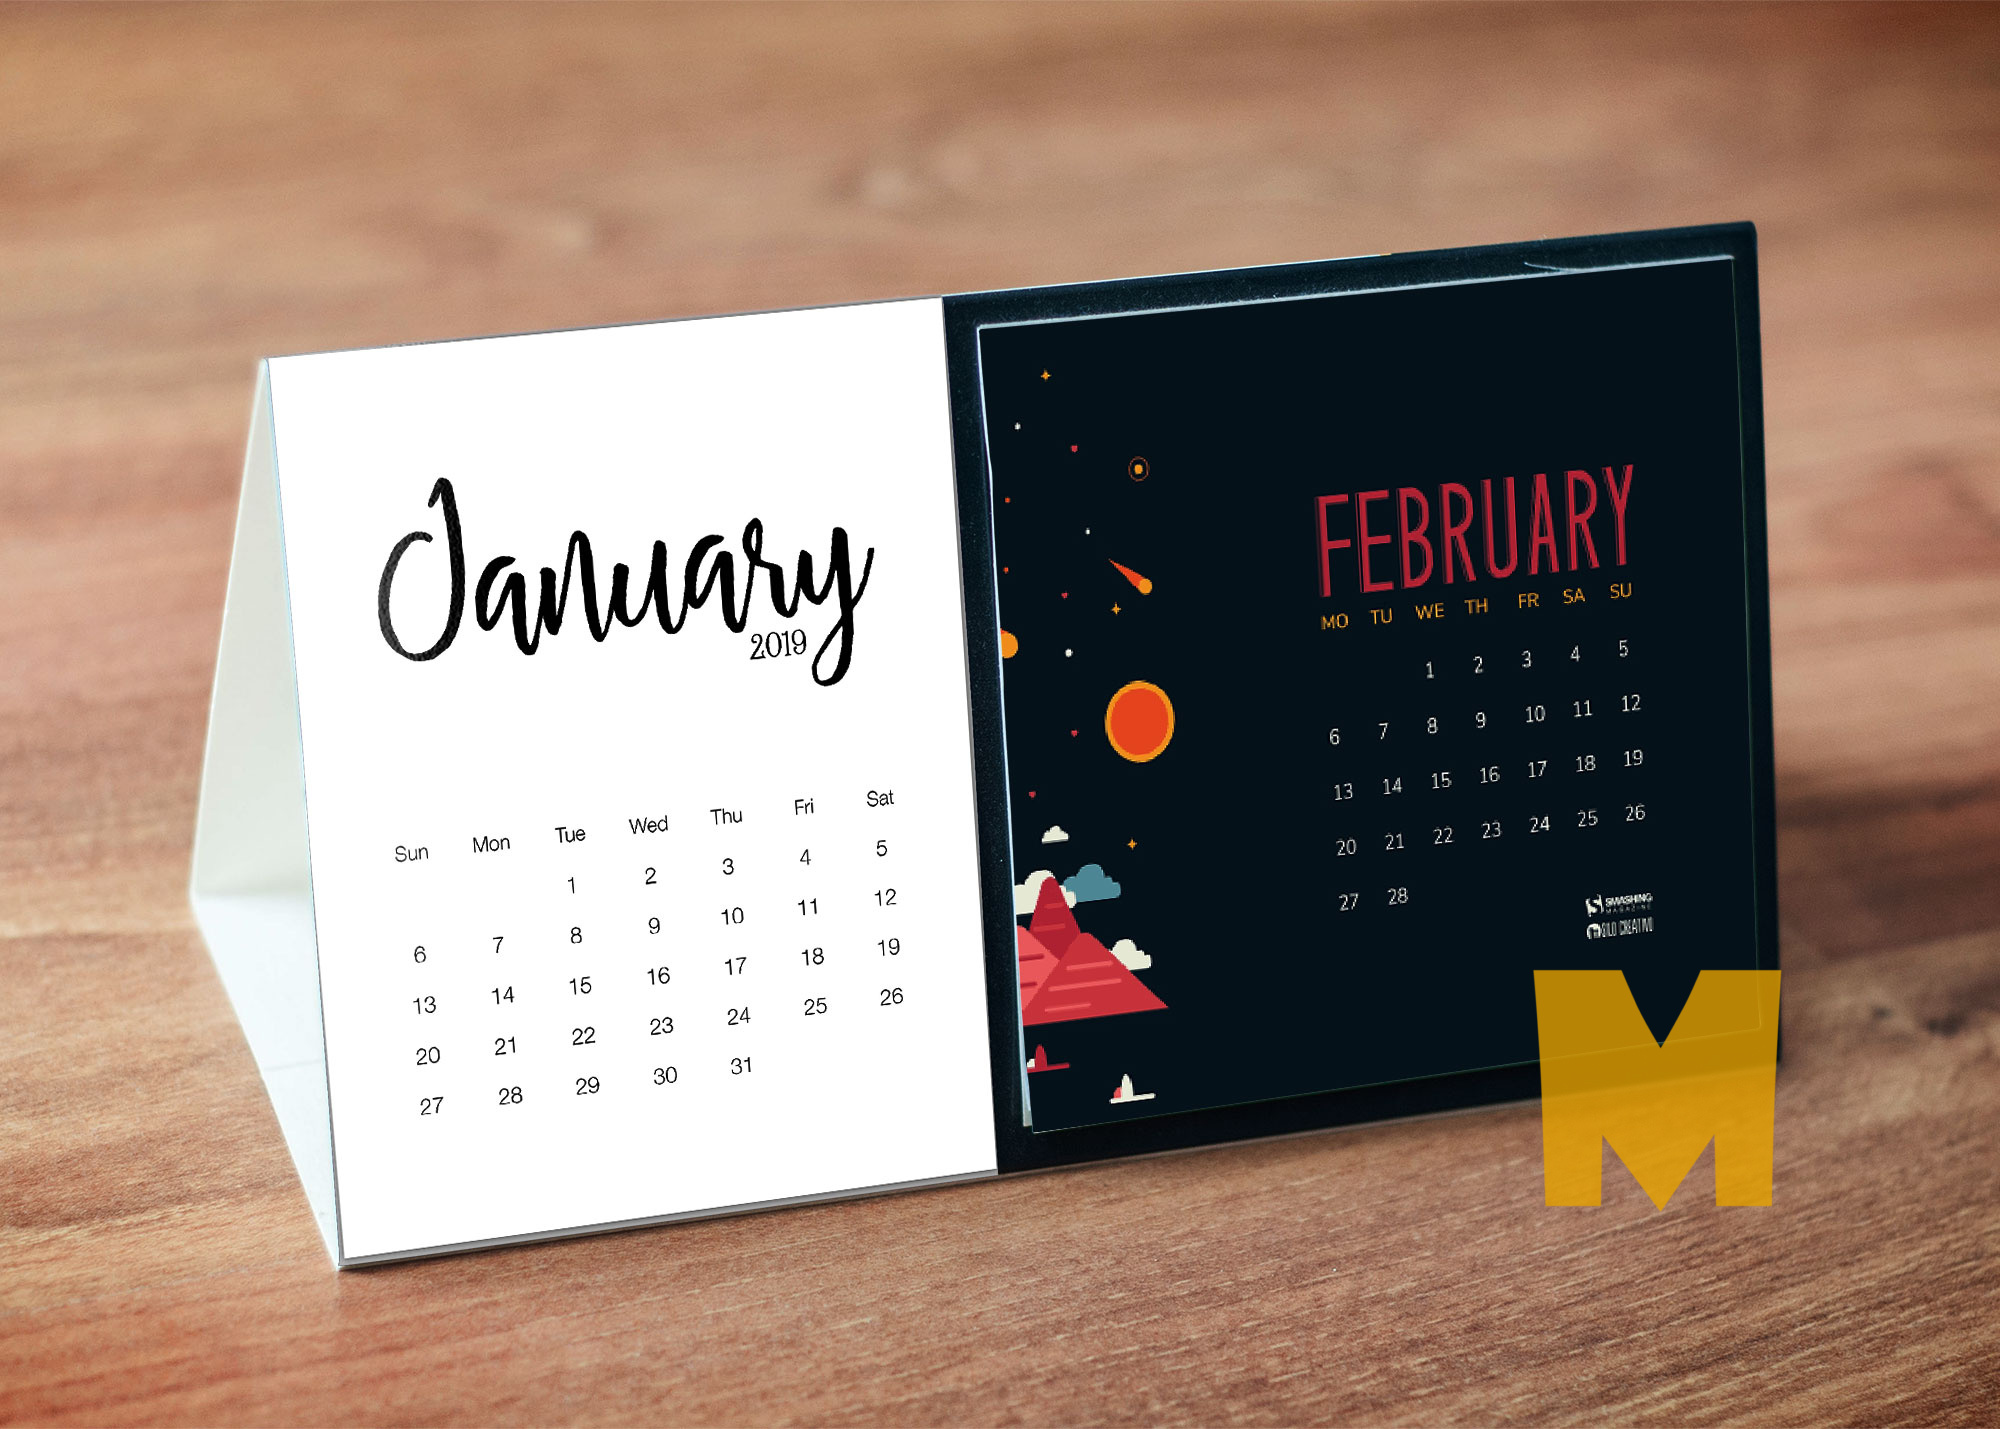 Table Calender Design Mockup